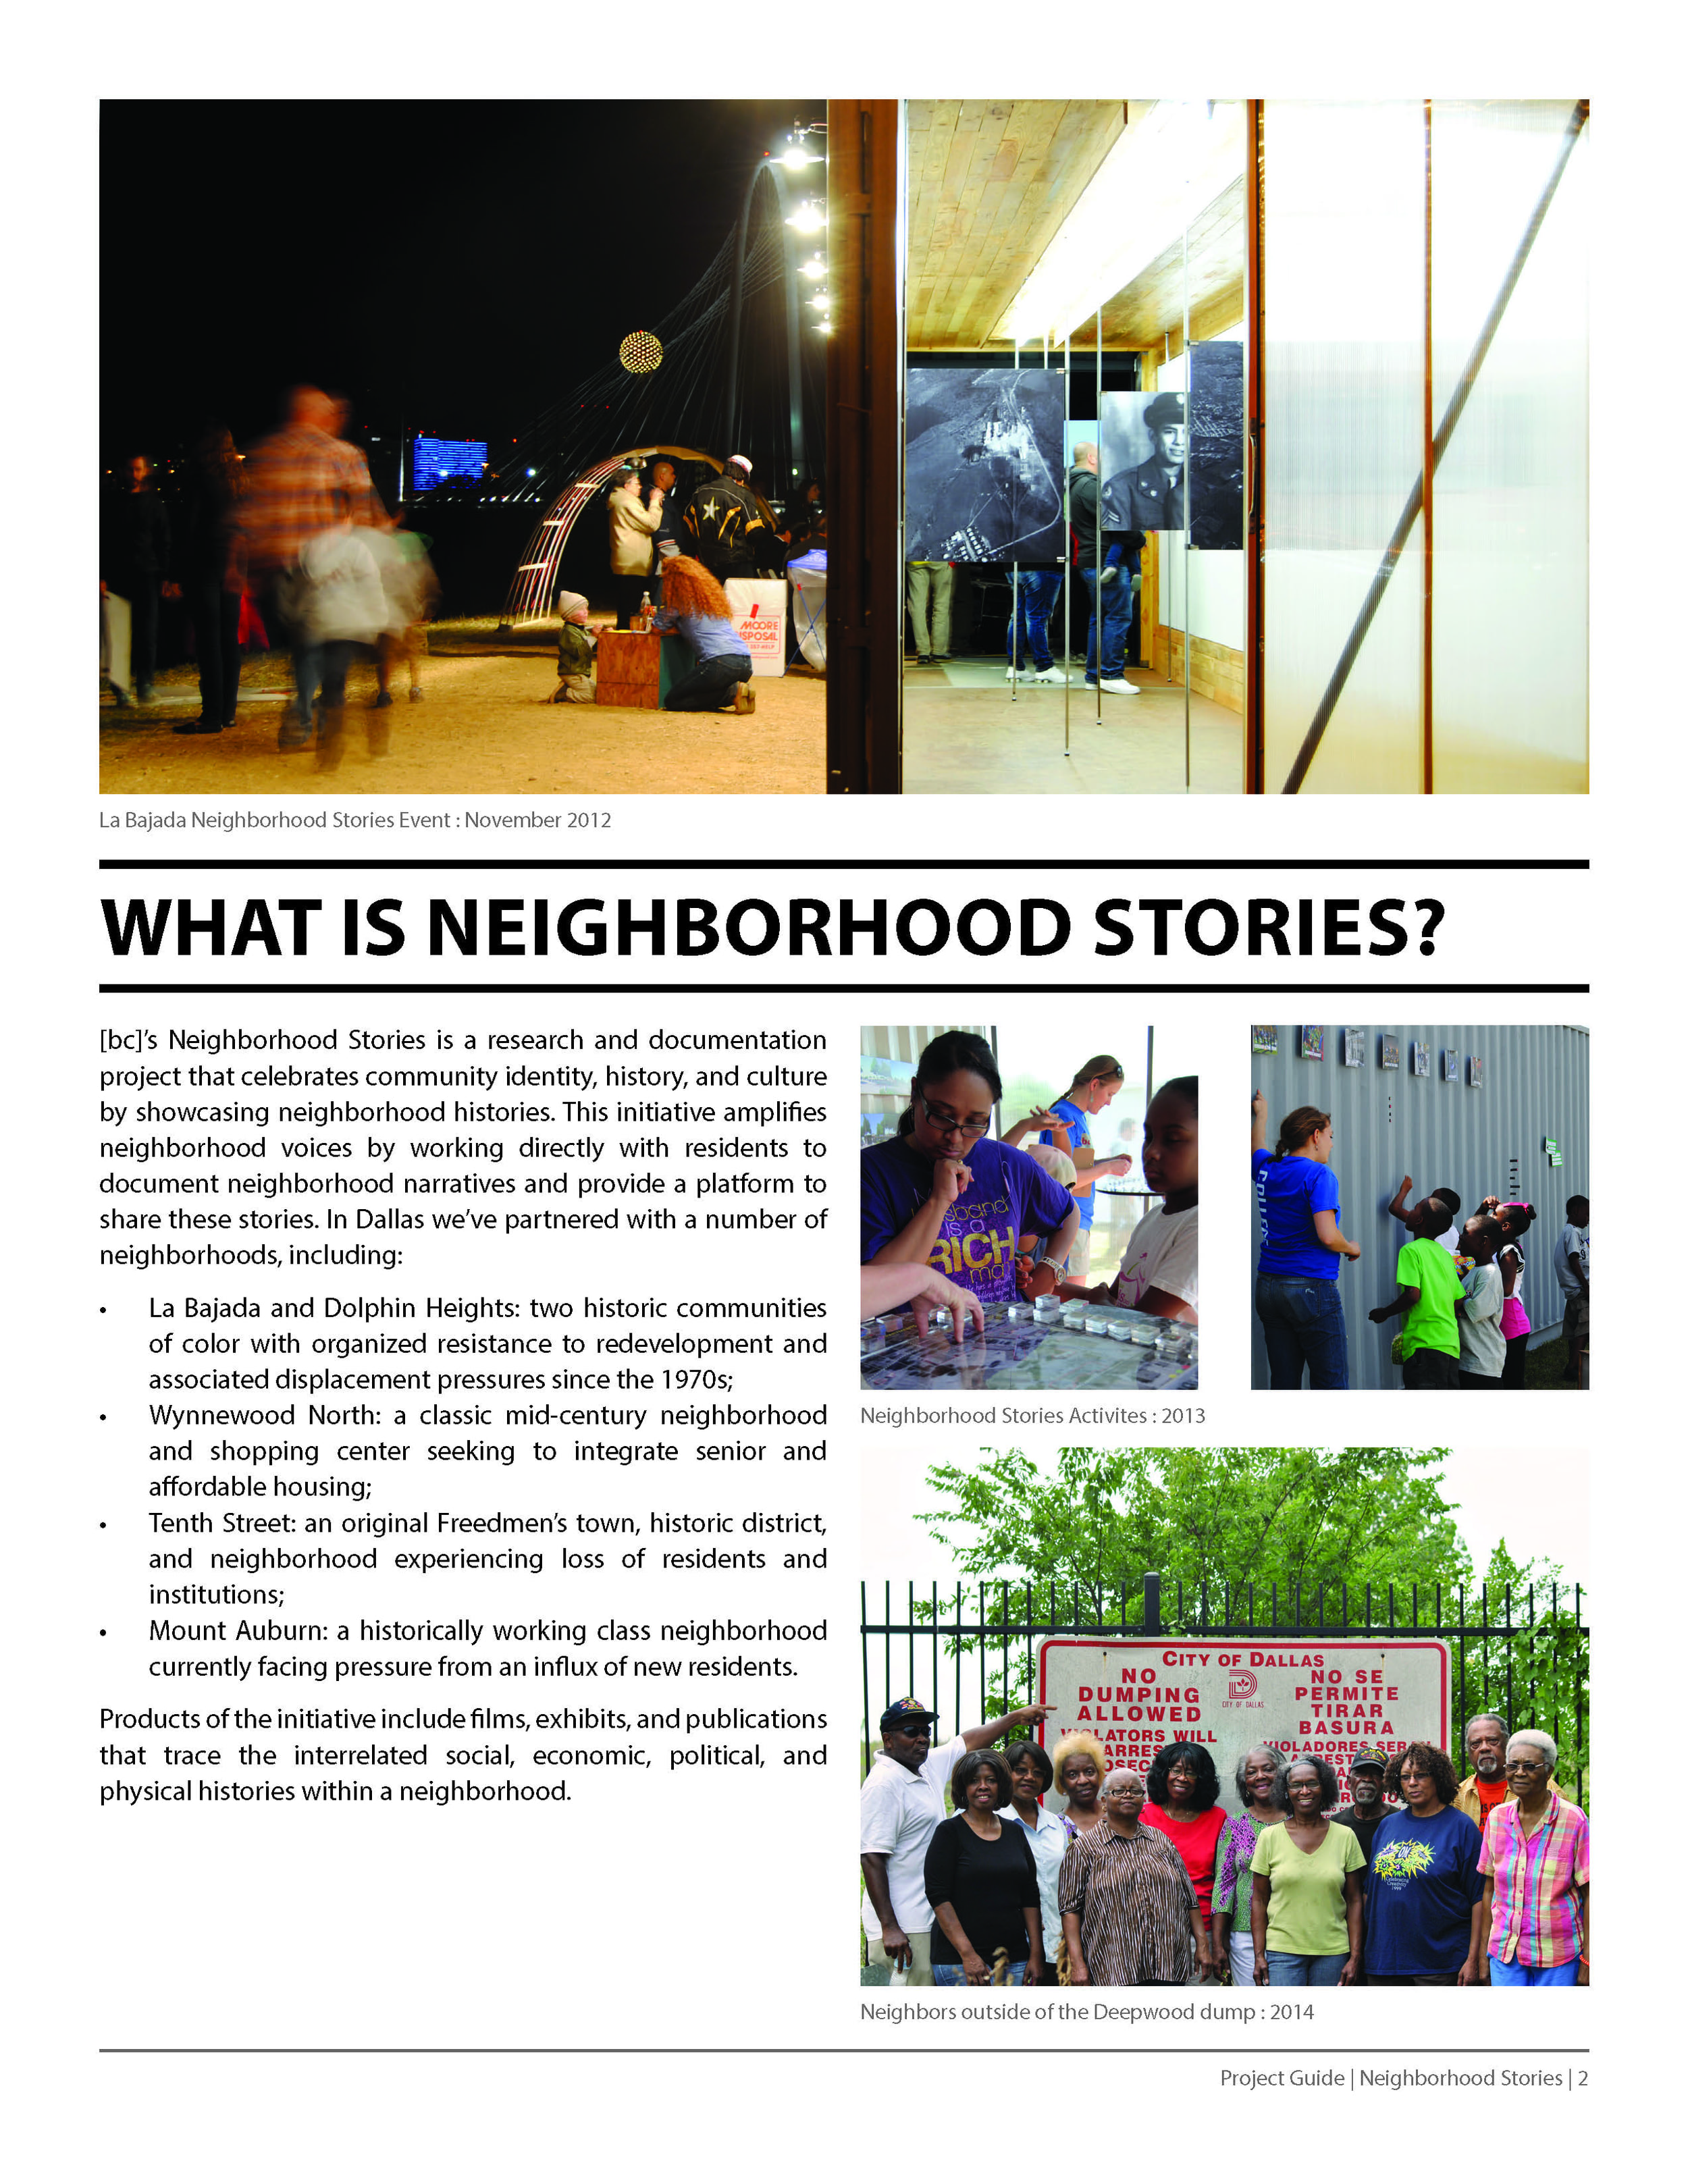 Neighborhood Stories Project Guide_20150814_Page_2.jpg